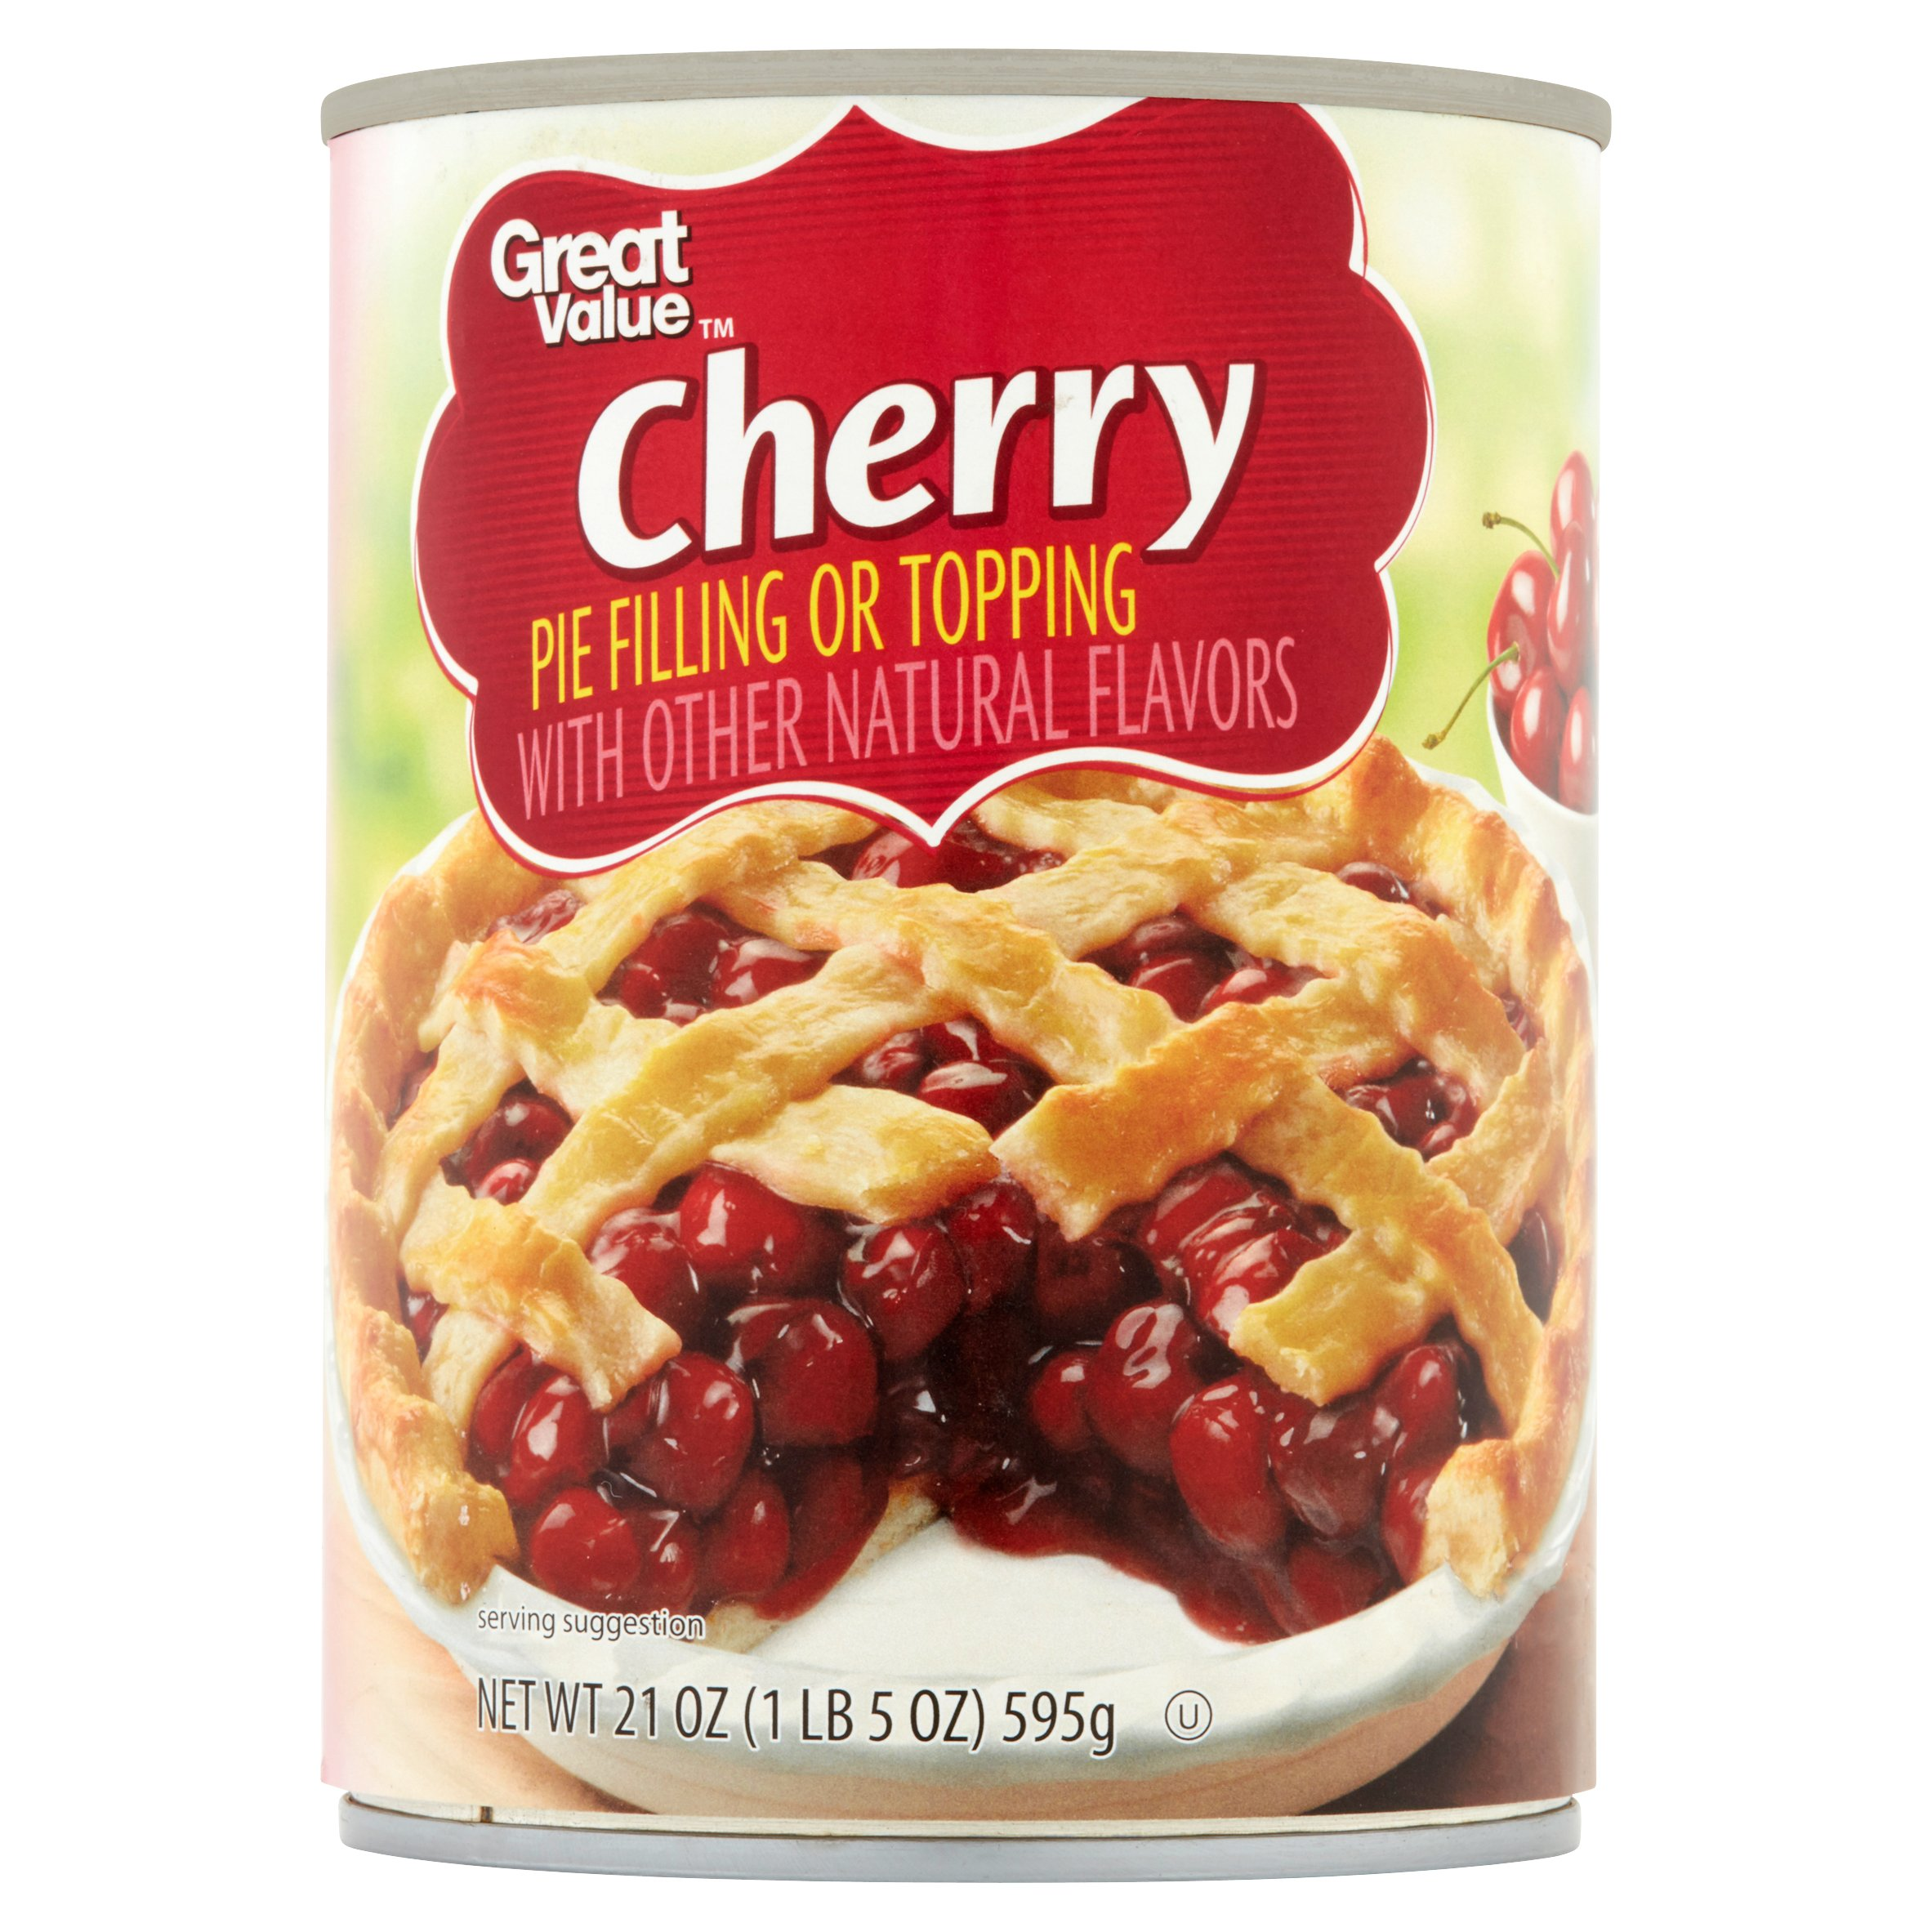 Great Value Pie Filling or Topping, Cherry, 21 oz by Wal-Mart Stores, Inc.